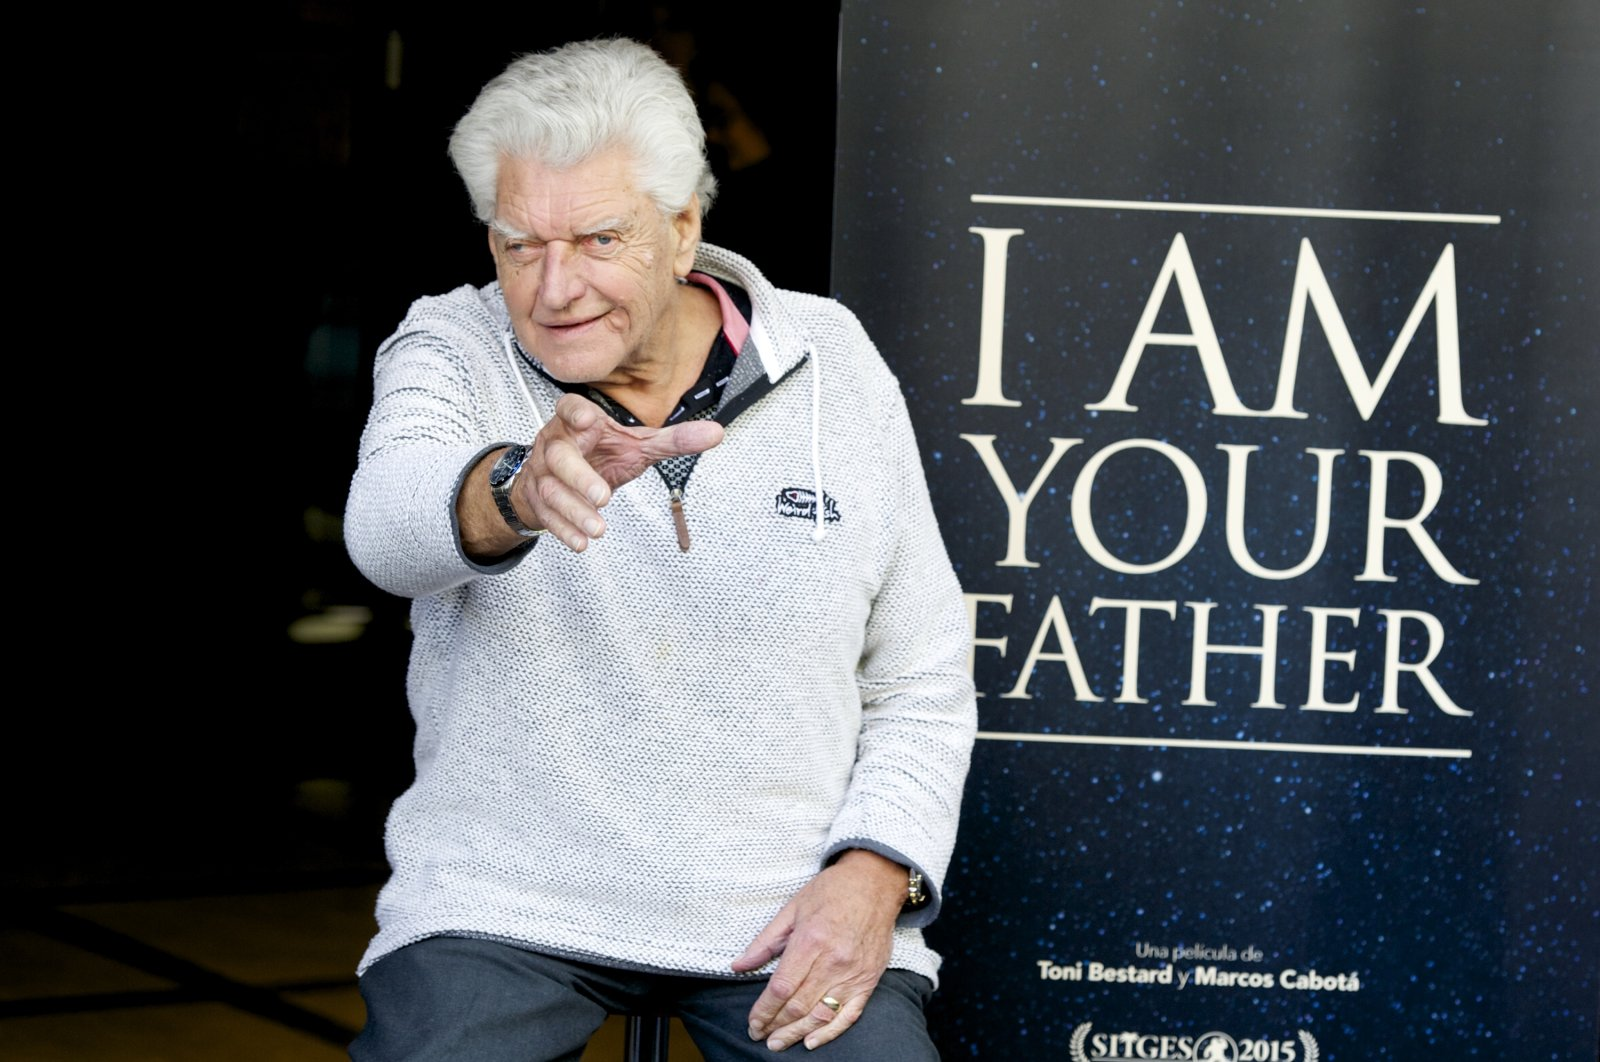 """David Prowse (Darth Vader) attends the """"I Am Your Father"""" photocall at Verdi Cinema in Madrid, Spain, Nov. 18, 2015. (Getty Images)"""